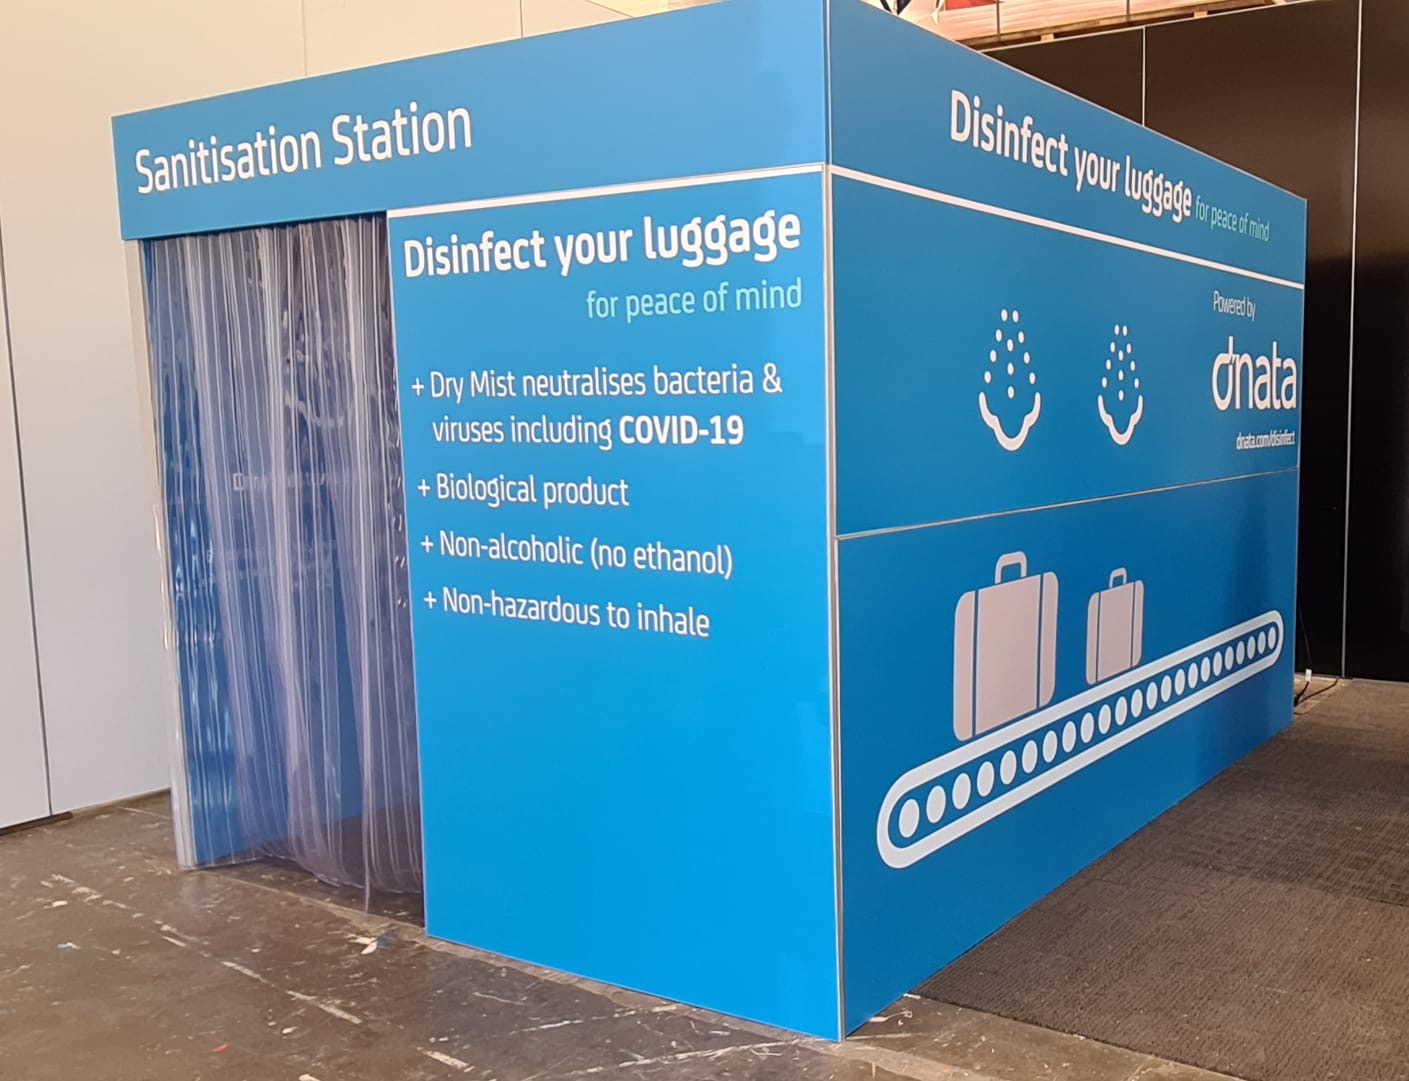 luggage disinfection